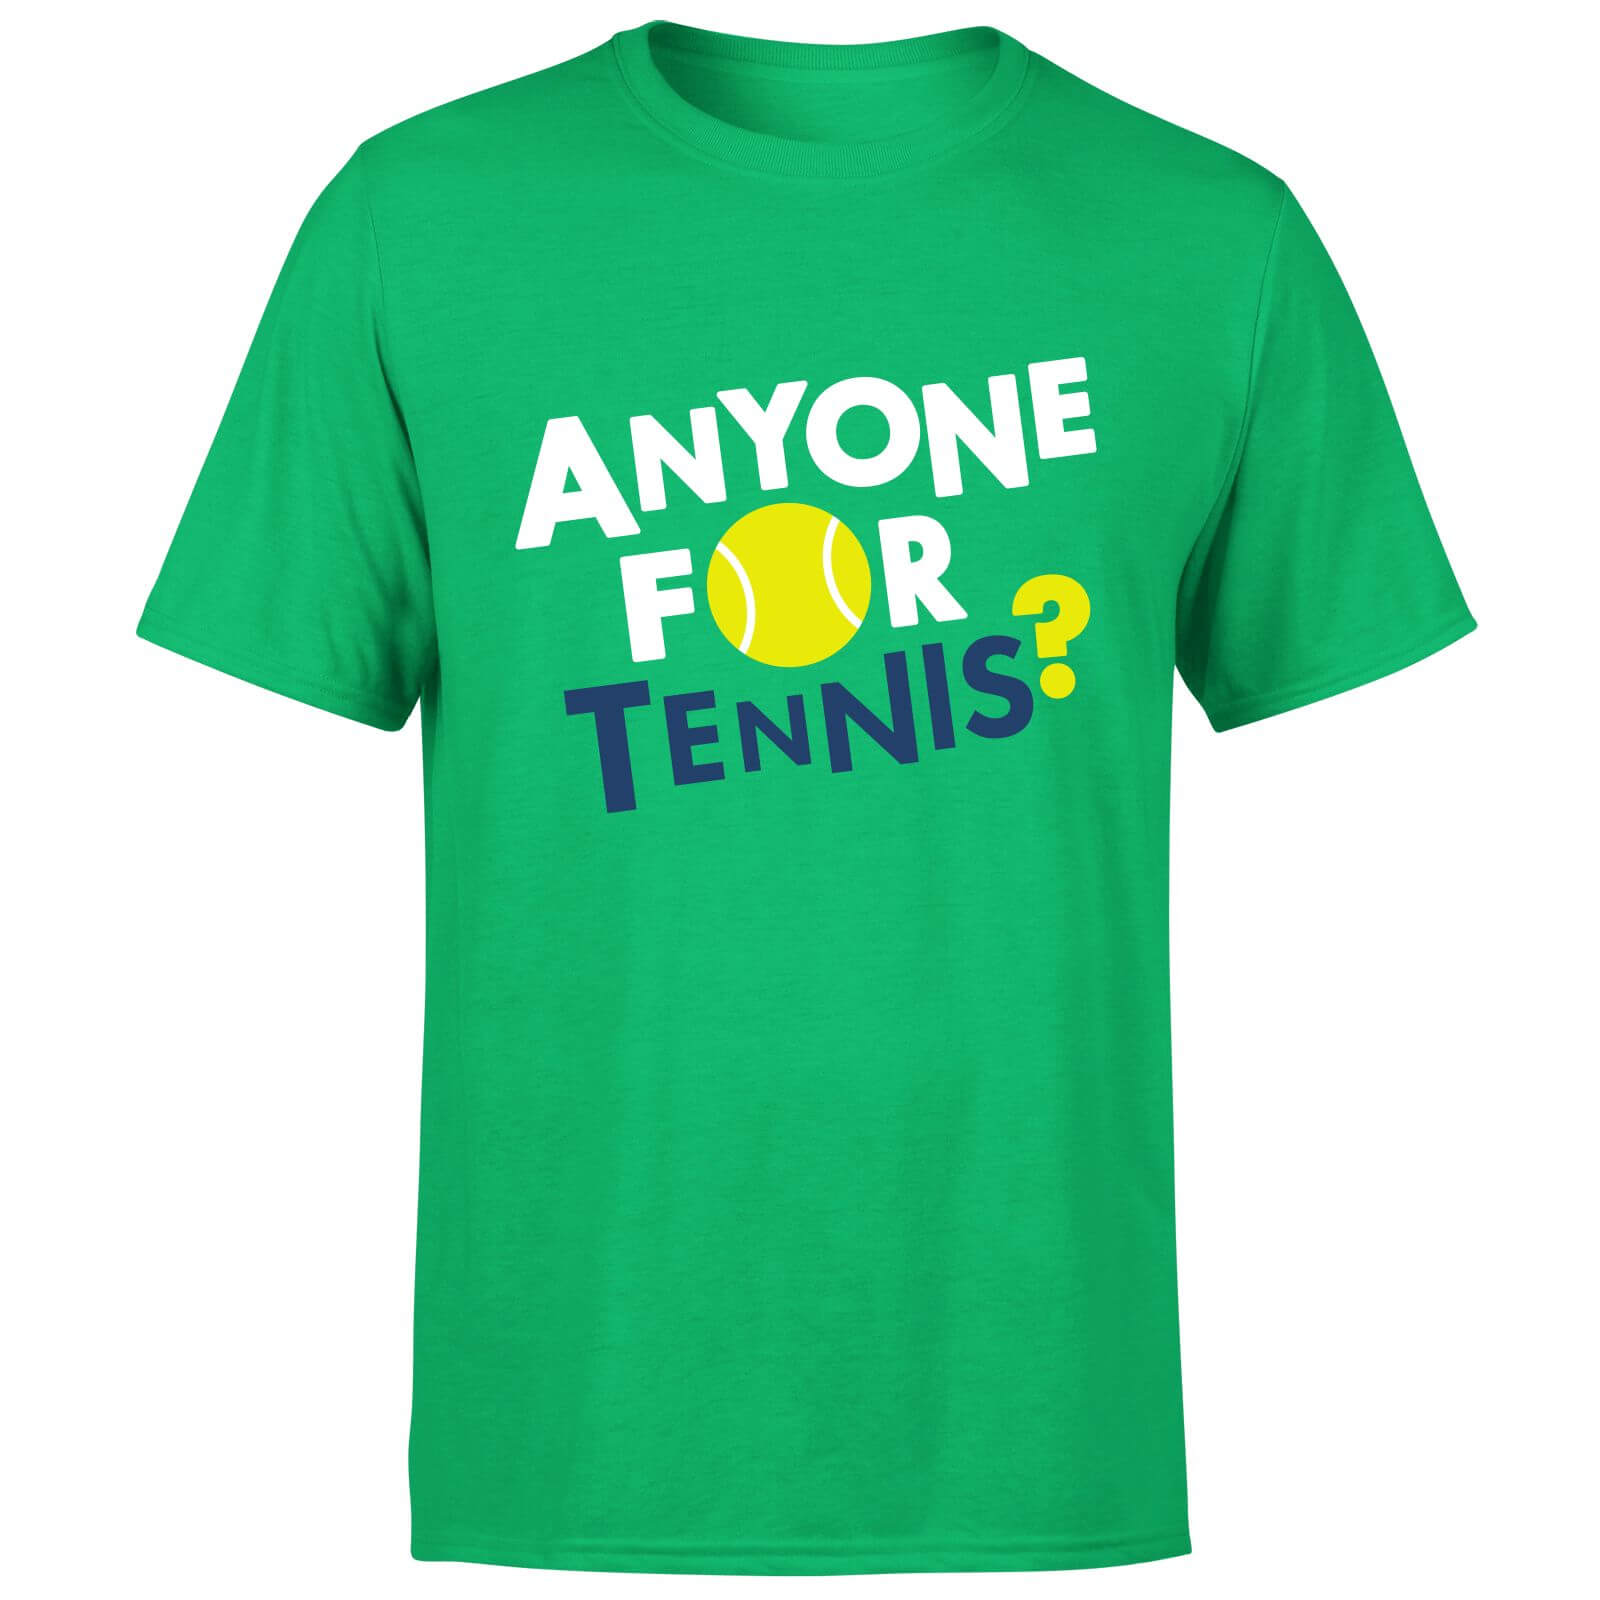 Anyone for Tennis T-Shirt - Kelly Green